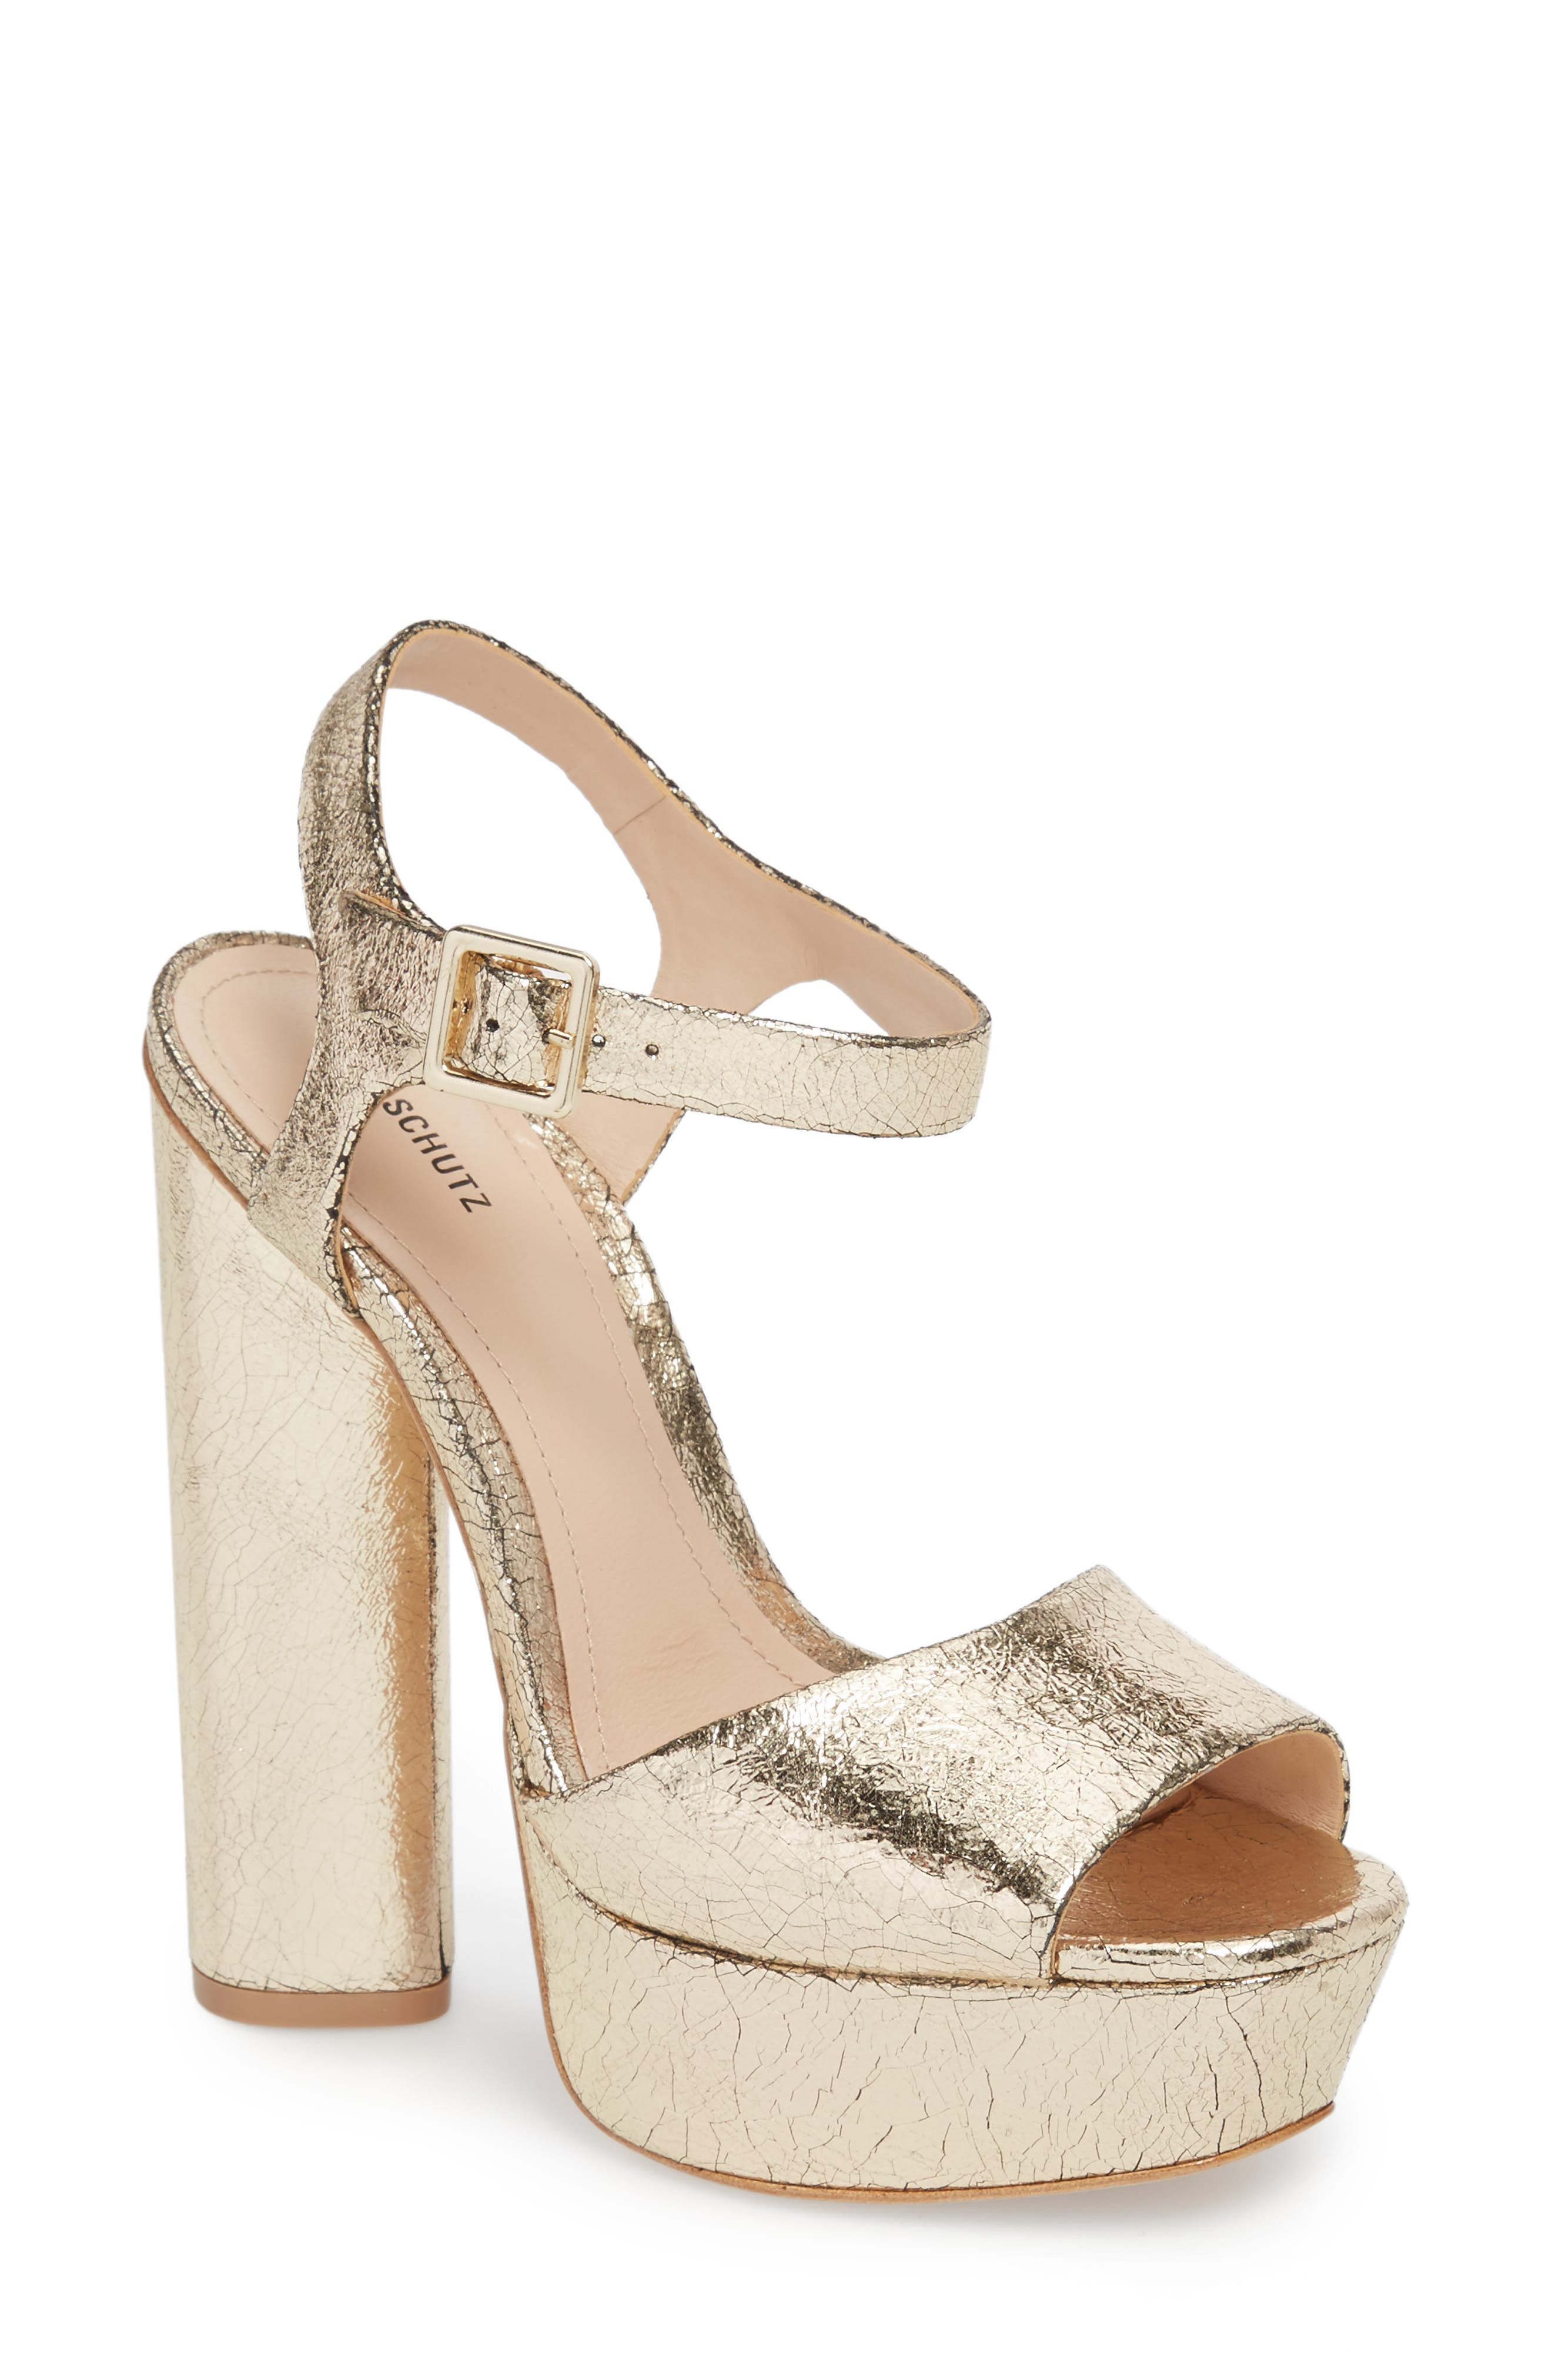 Alternate Image 1 Selected - Schutz Jane Platform Sandal (Women)